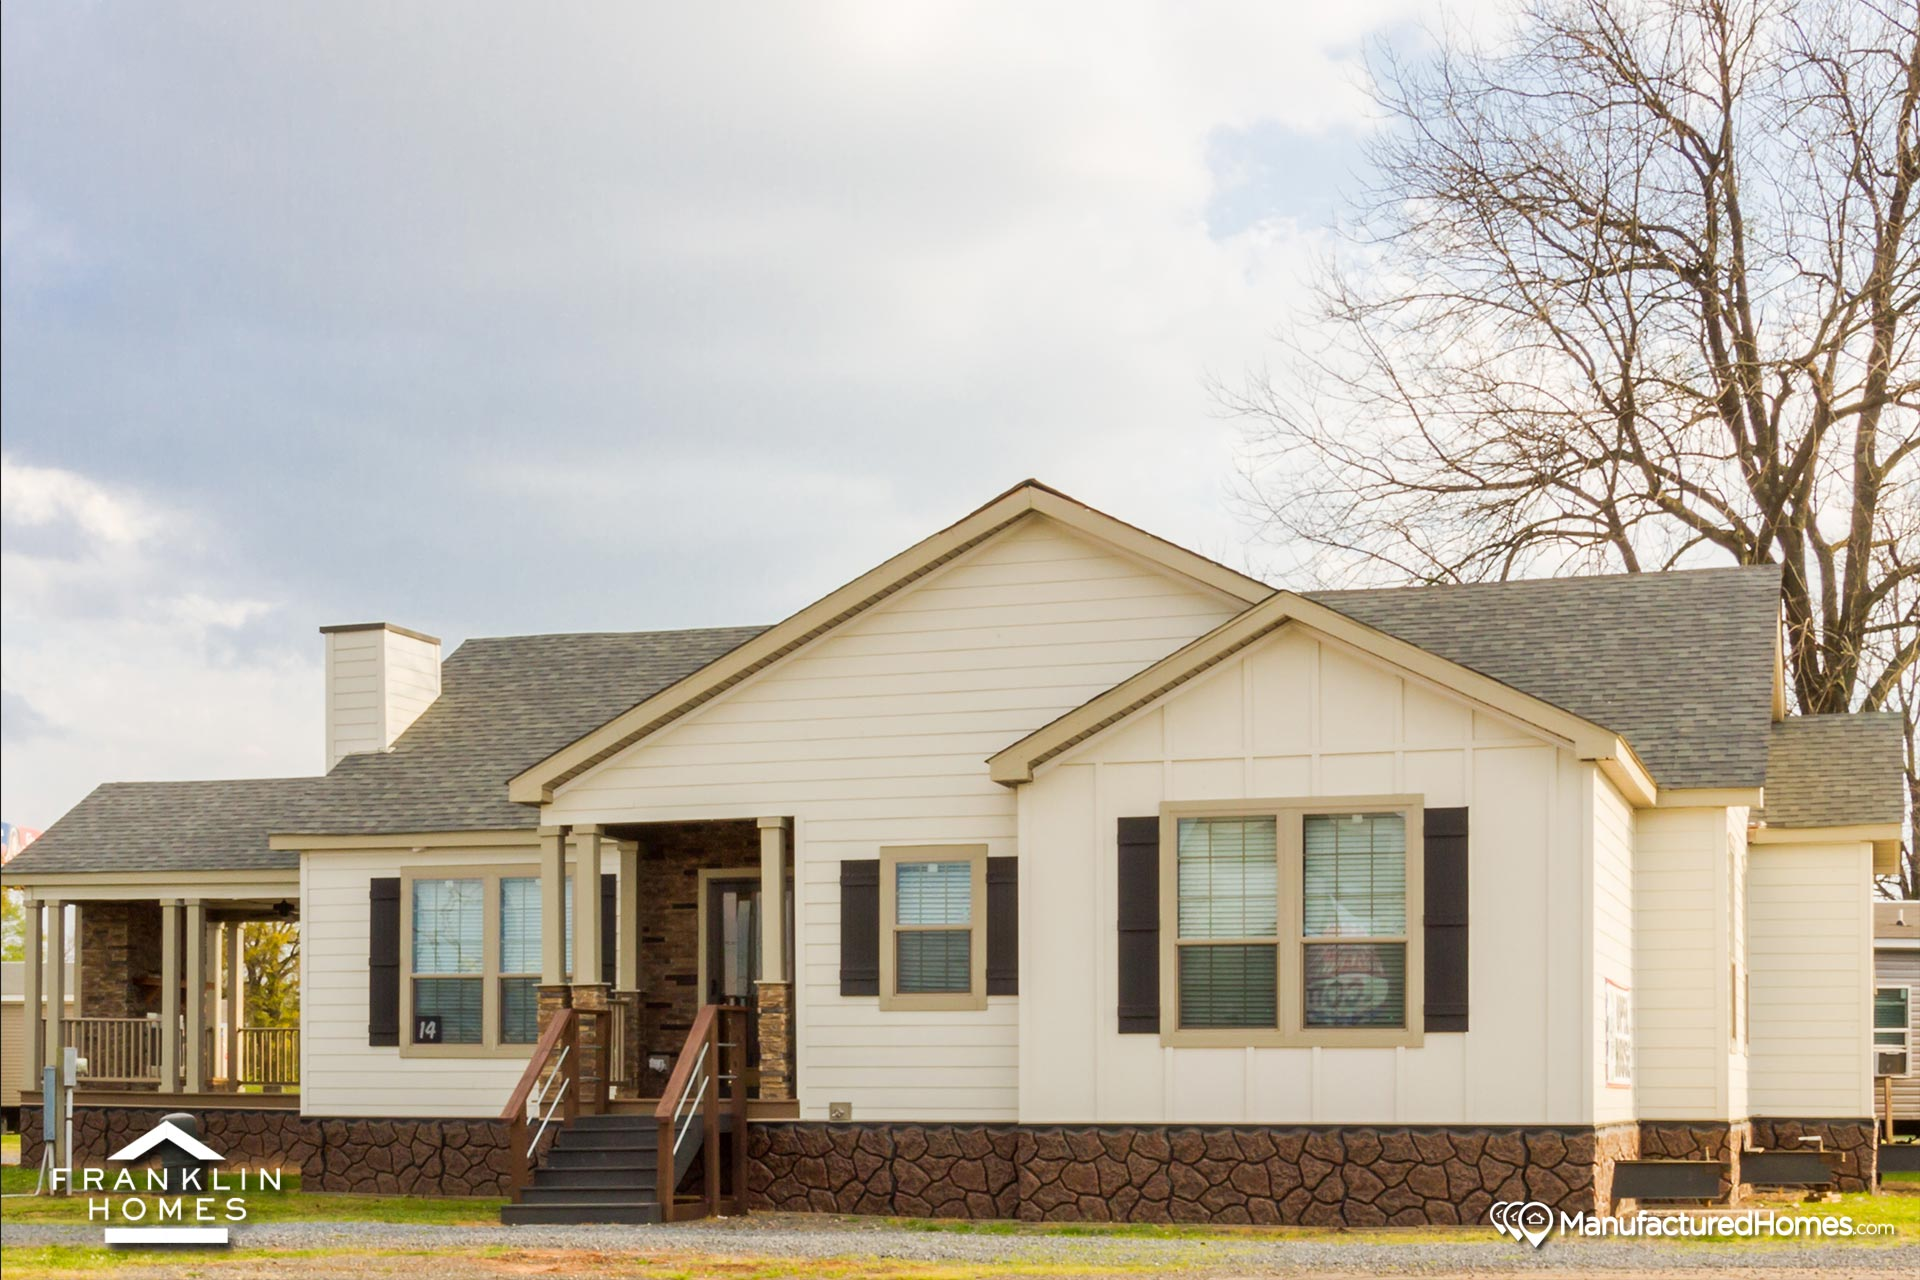 Tennessee Happy Homes in Lawrenceburg, TN - Manufactured Home Dealer